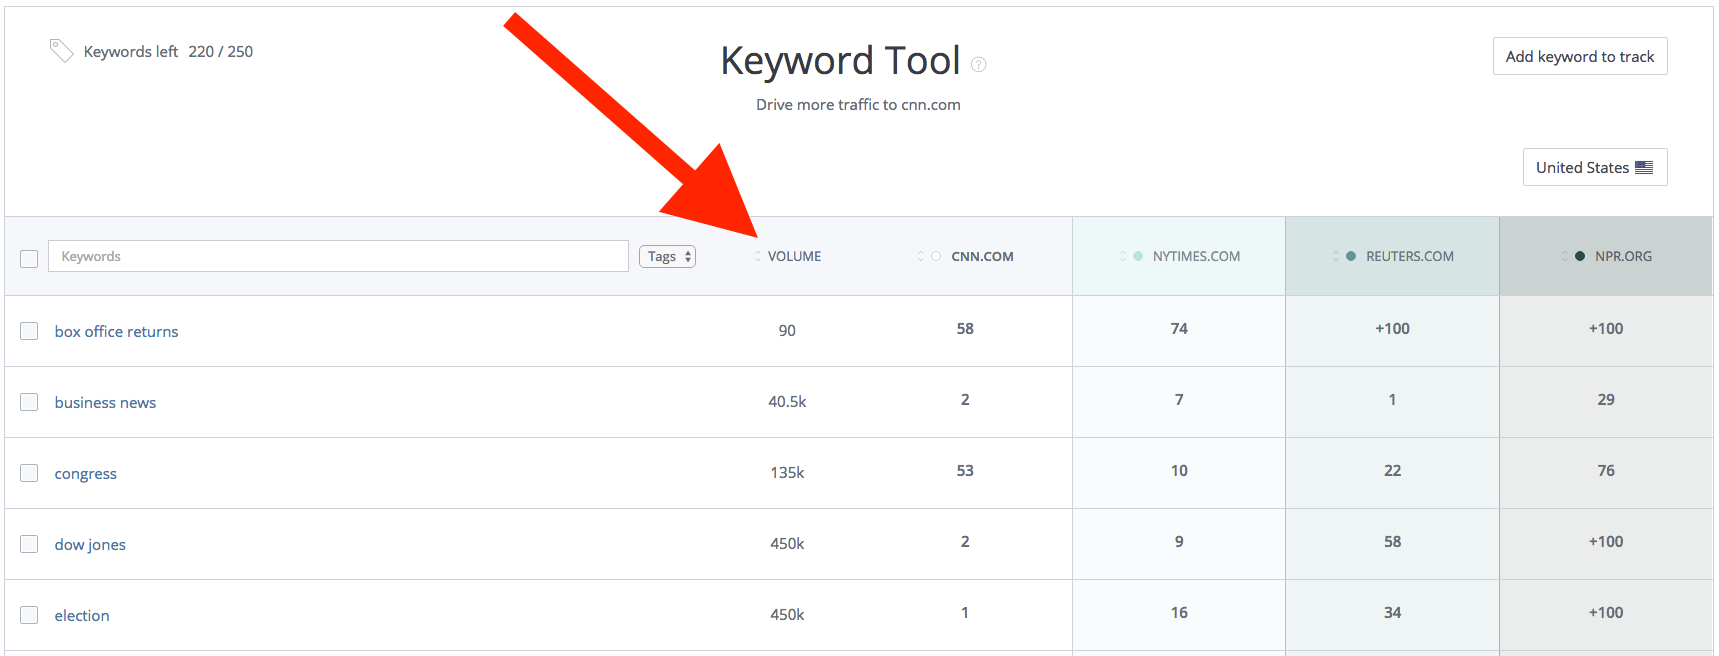 WooRank Keyword Tool average monthly volume